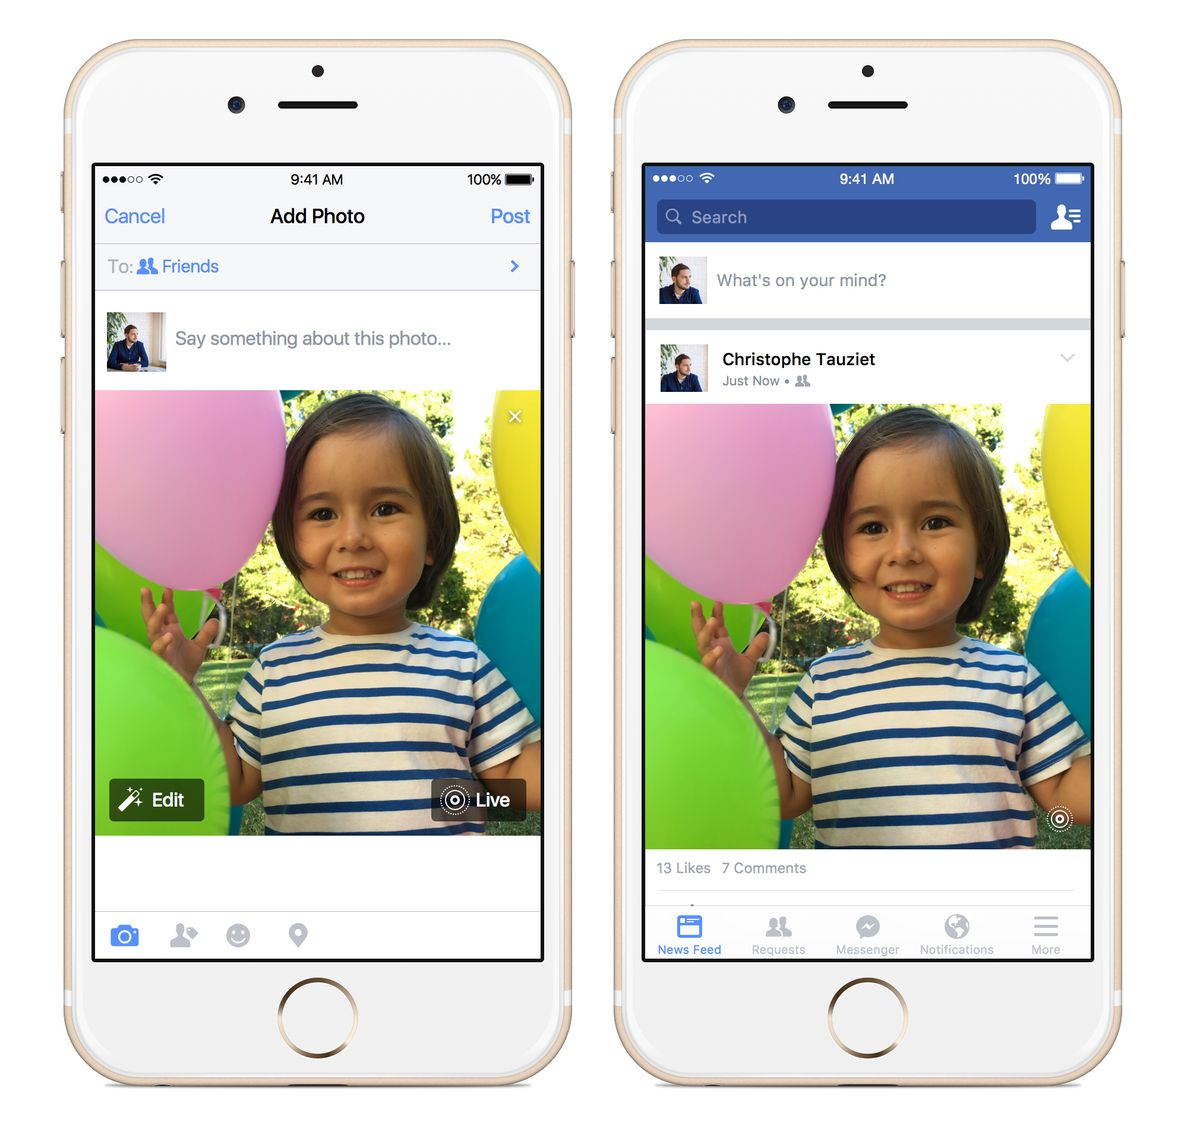 FILE - This file photo provided by Apple and Facebook demonstrates the posting of an animated photo using Facebook's new app, left, and the viewing of it, right, on an iPhone. The latest iPhones come with the ability to turn still images into video, known as Live Photos. (Courtesy of Apple and Facebook via AP, File) (AP)